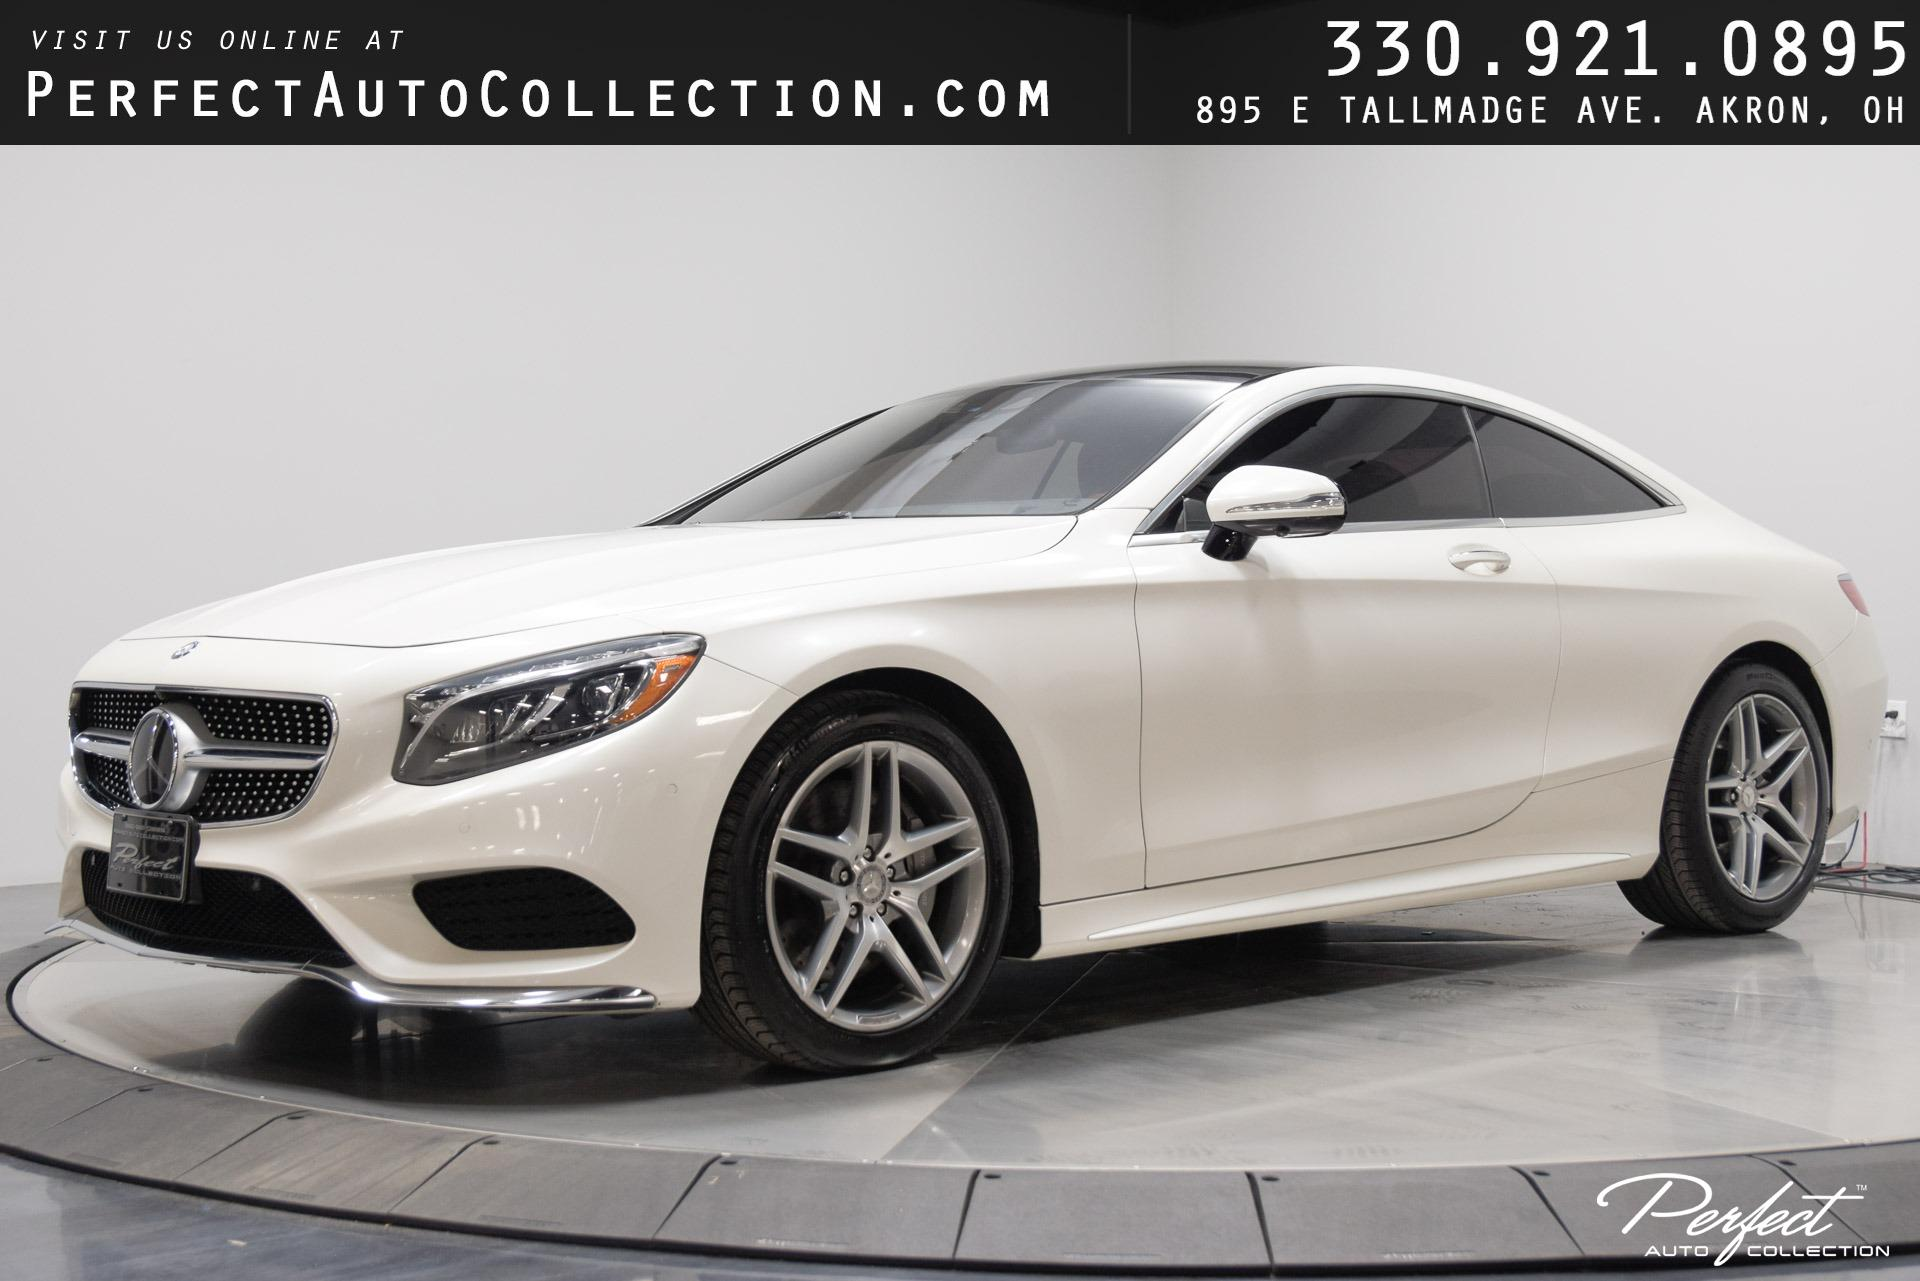 Used 2016 Mercedes-Benz S-Class S 550 4MATIC for sale $69,893 at Perfect Auto Collection in Akron OH 44310 1